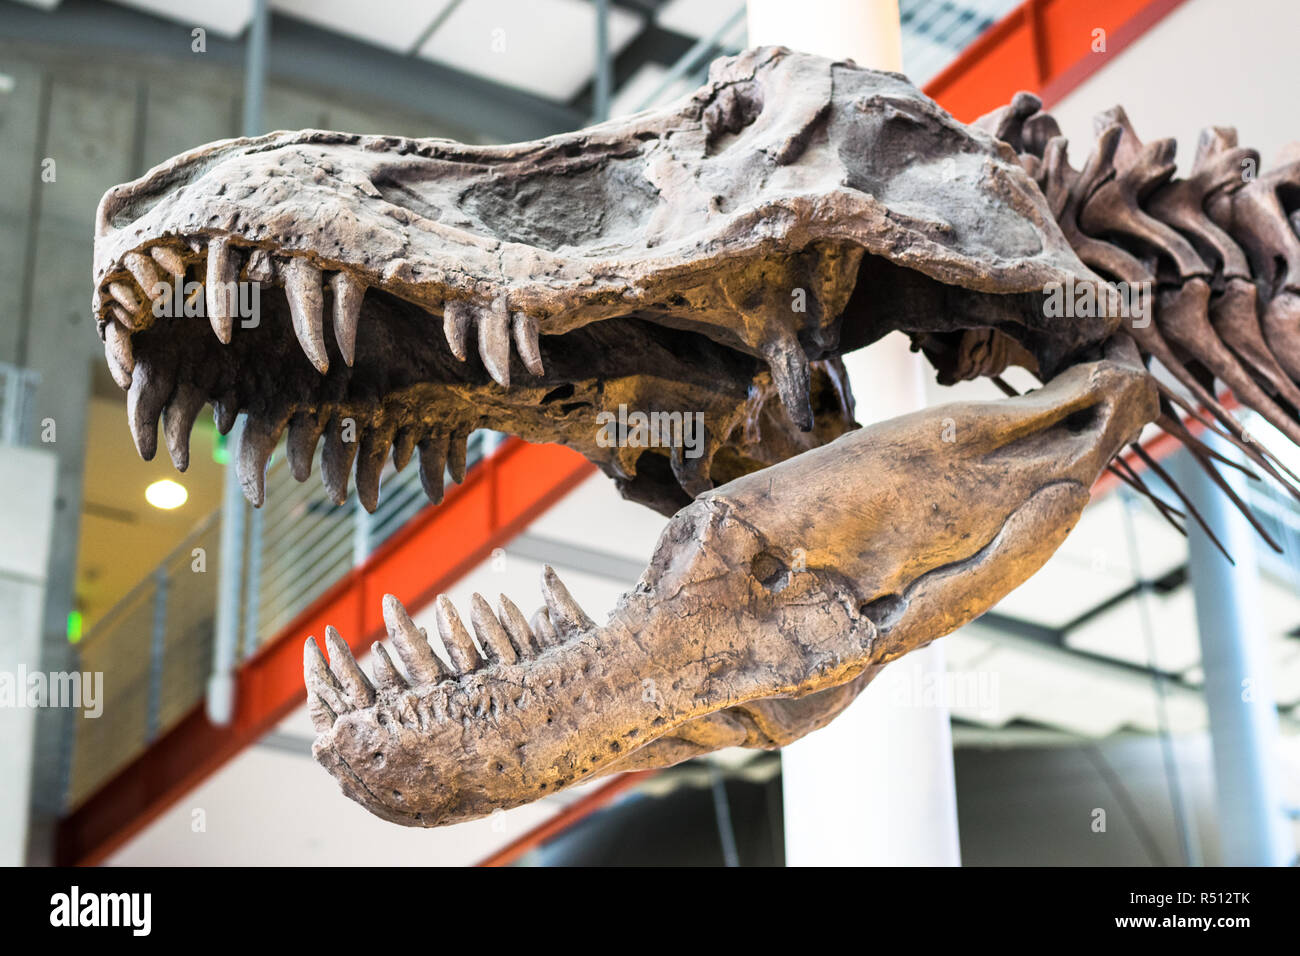 Tyrannosaurus Rex Dinosaur Fossil. A fossil dinosaur skull of the tyrannosaurus rex against an unfocused background, event of extinction. - Stock Image